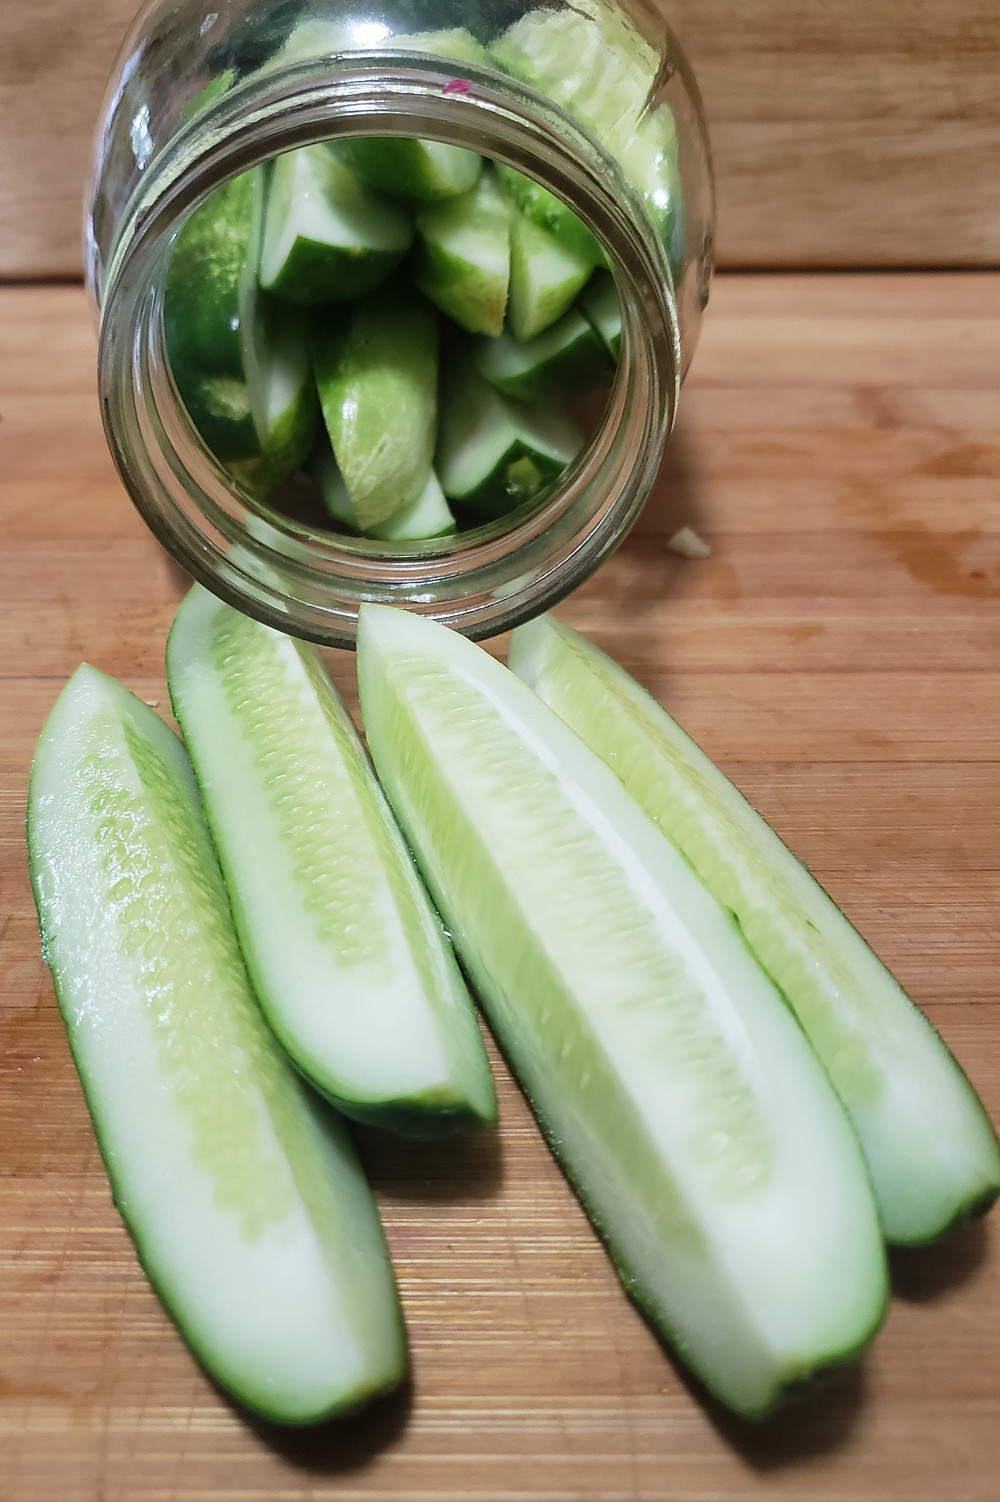 A jar lays on its side with spears of cucumbers inside. In the foreground, four cucumber spears are laying on a wooden cutting board. End photo ID.